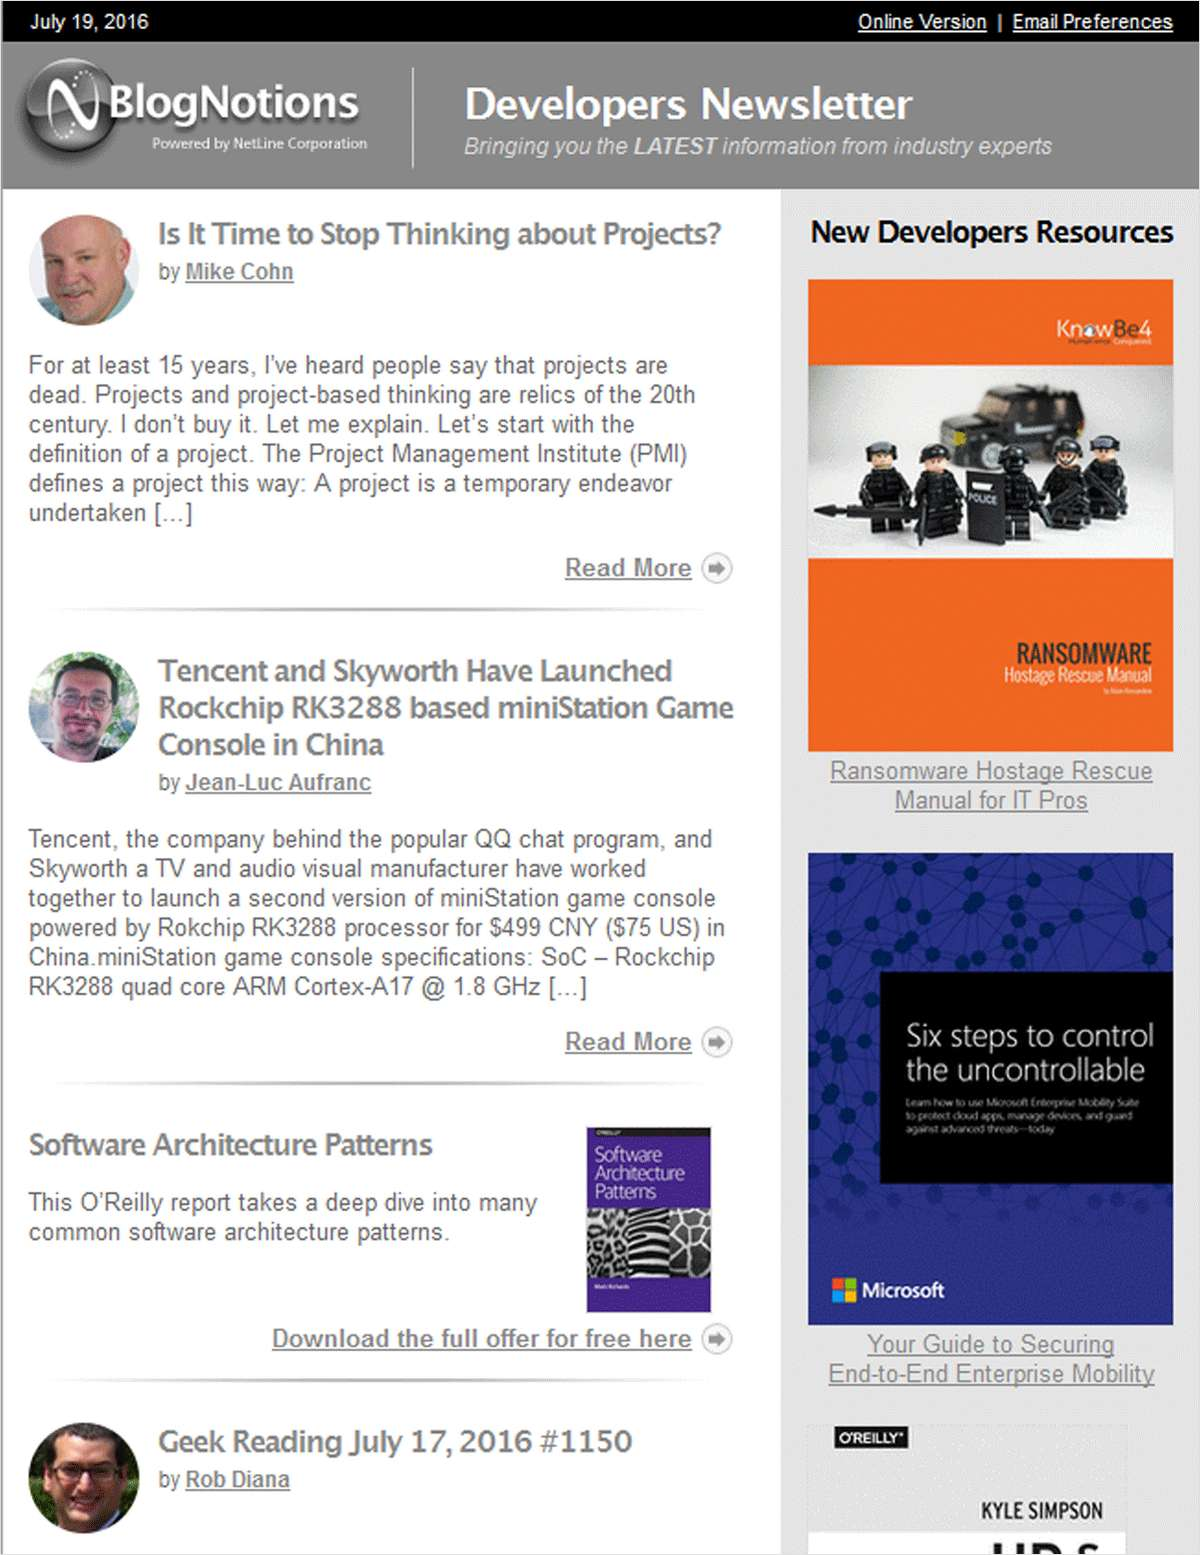 BlogNotions Developers Newsletter: Monthly eNewsletter Featuring Blogs from Industry Experts